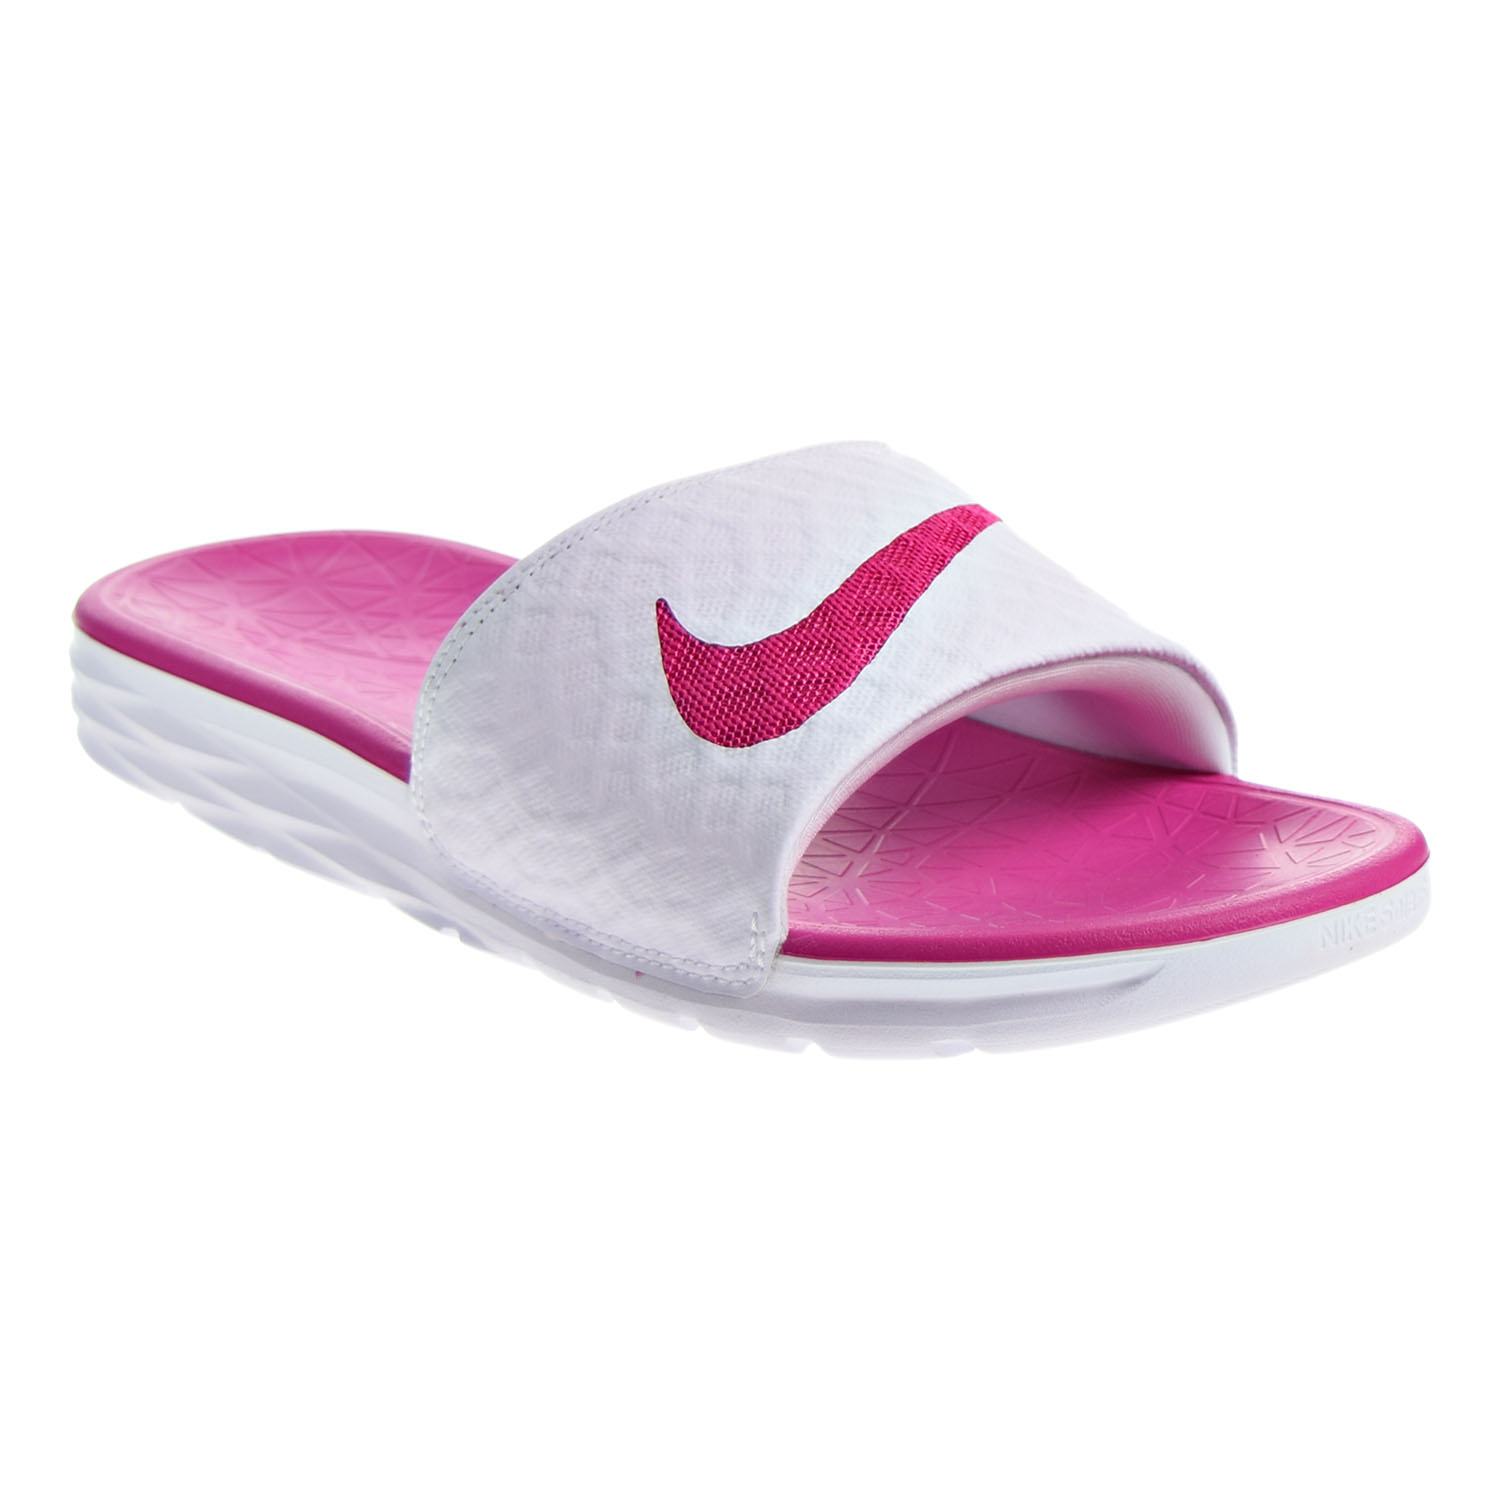 00f734fb4 Details about Nike Women s Benassi Solarsoft Sandals White Fireberry  705475-160